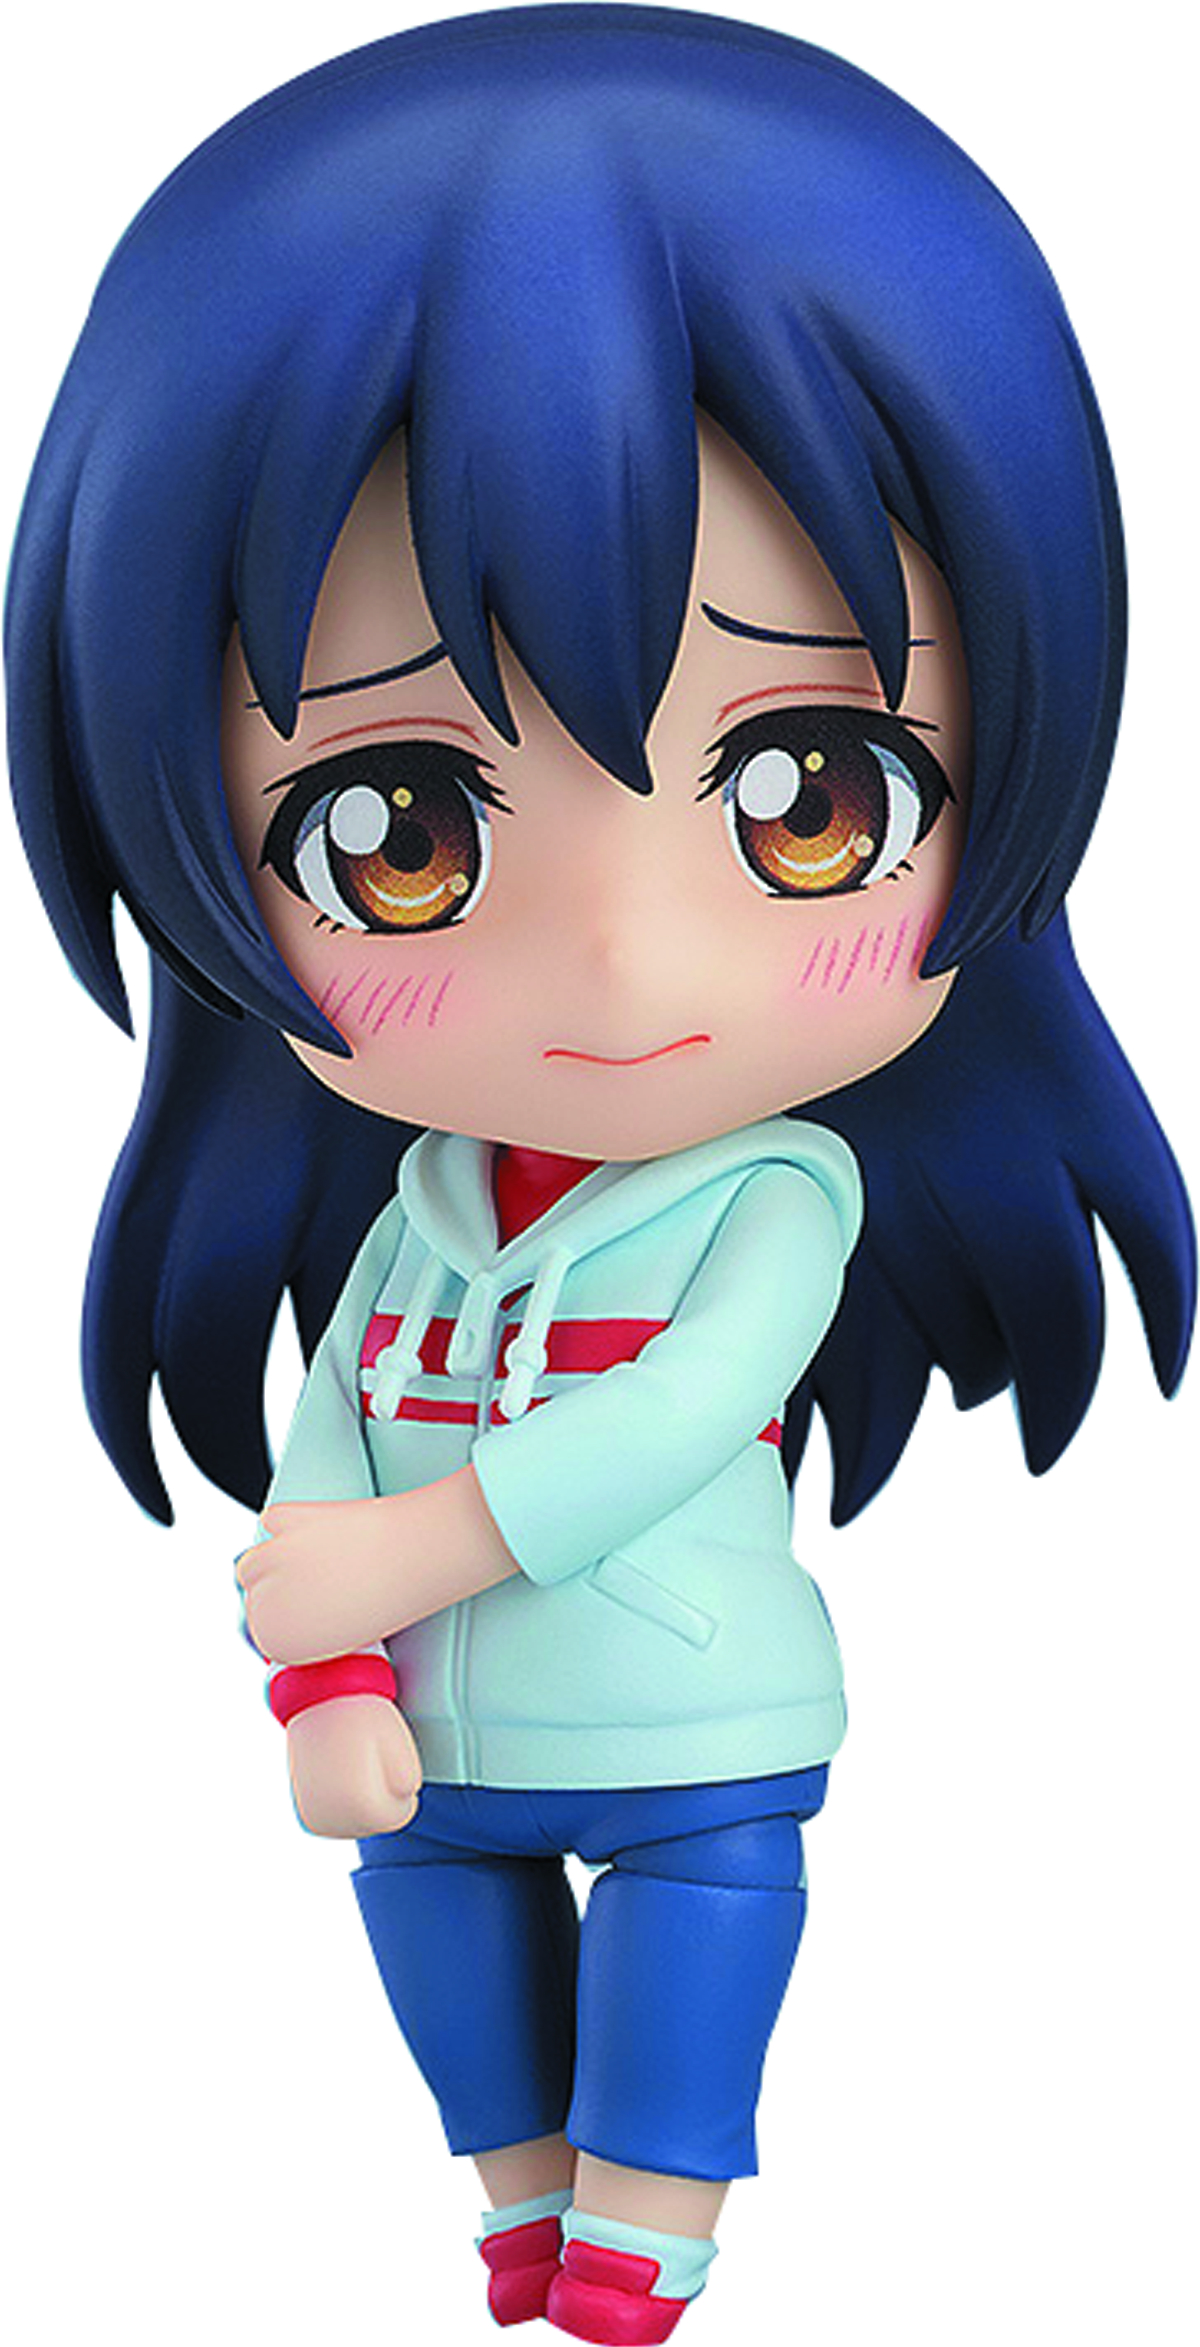 LOVE LIVE UMI SONODA NENDOROID TRAINING OUTFIT VER